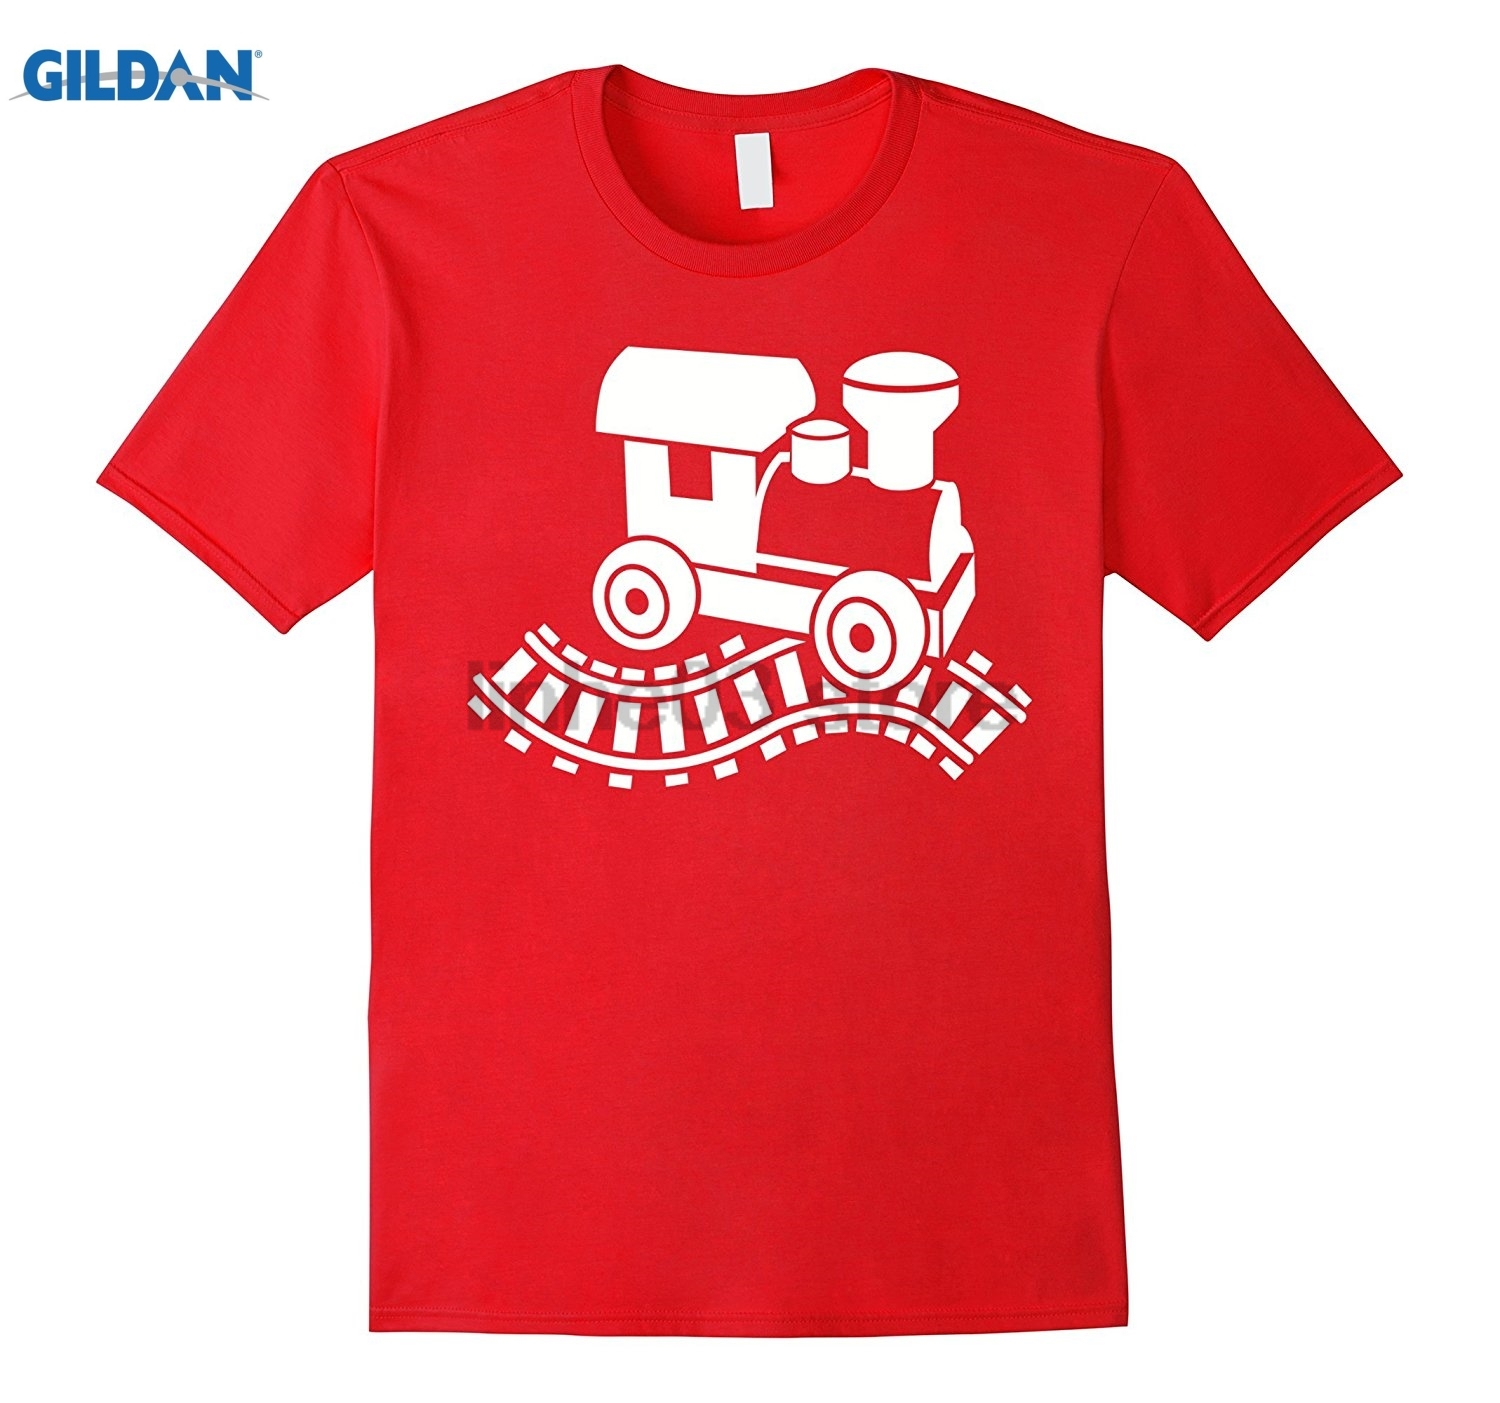 GILDAN Model railway T-Shirt Dress female T-shirt